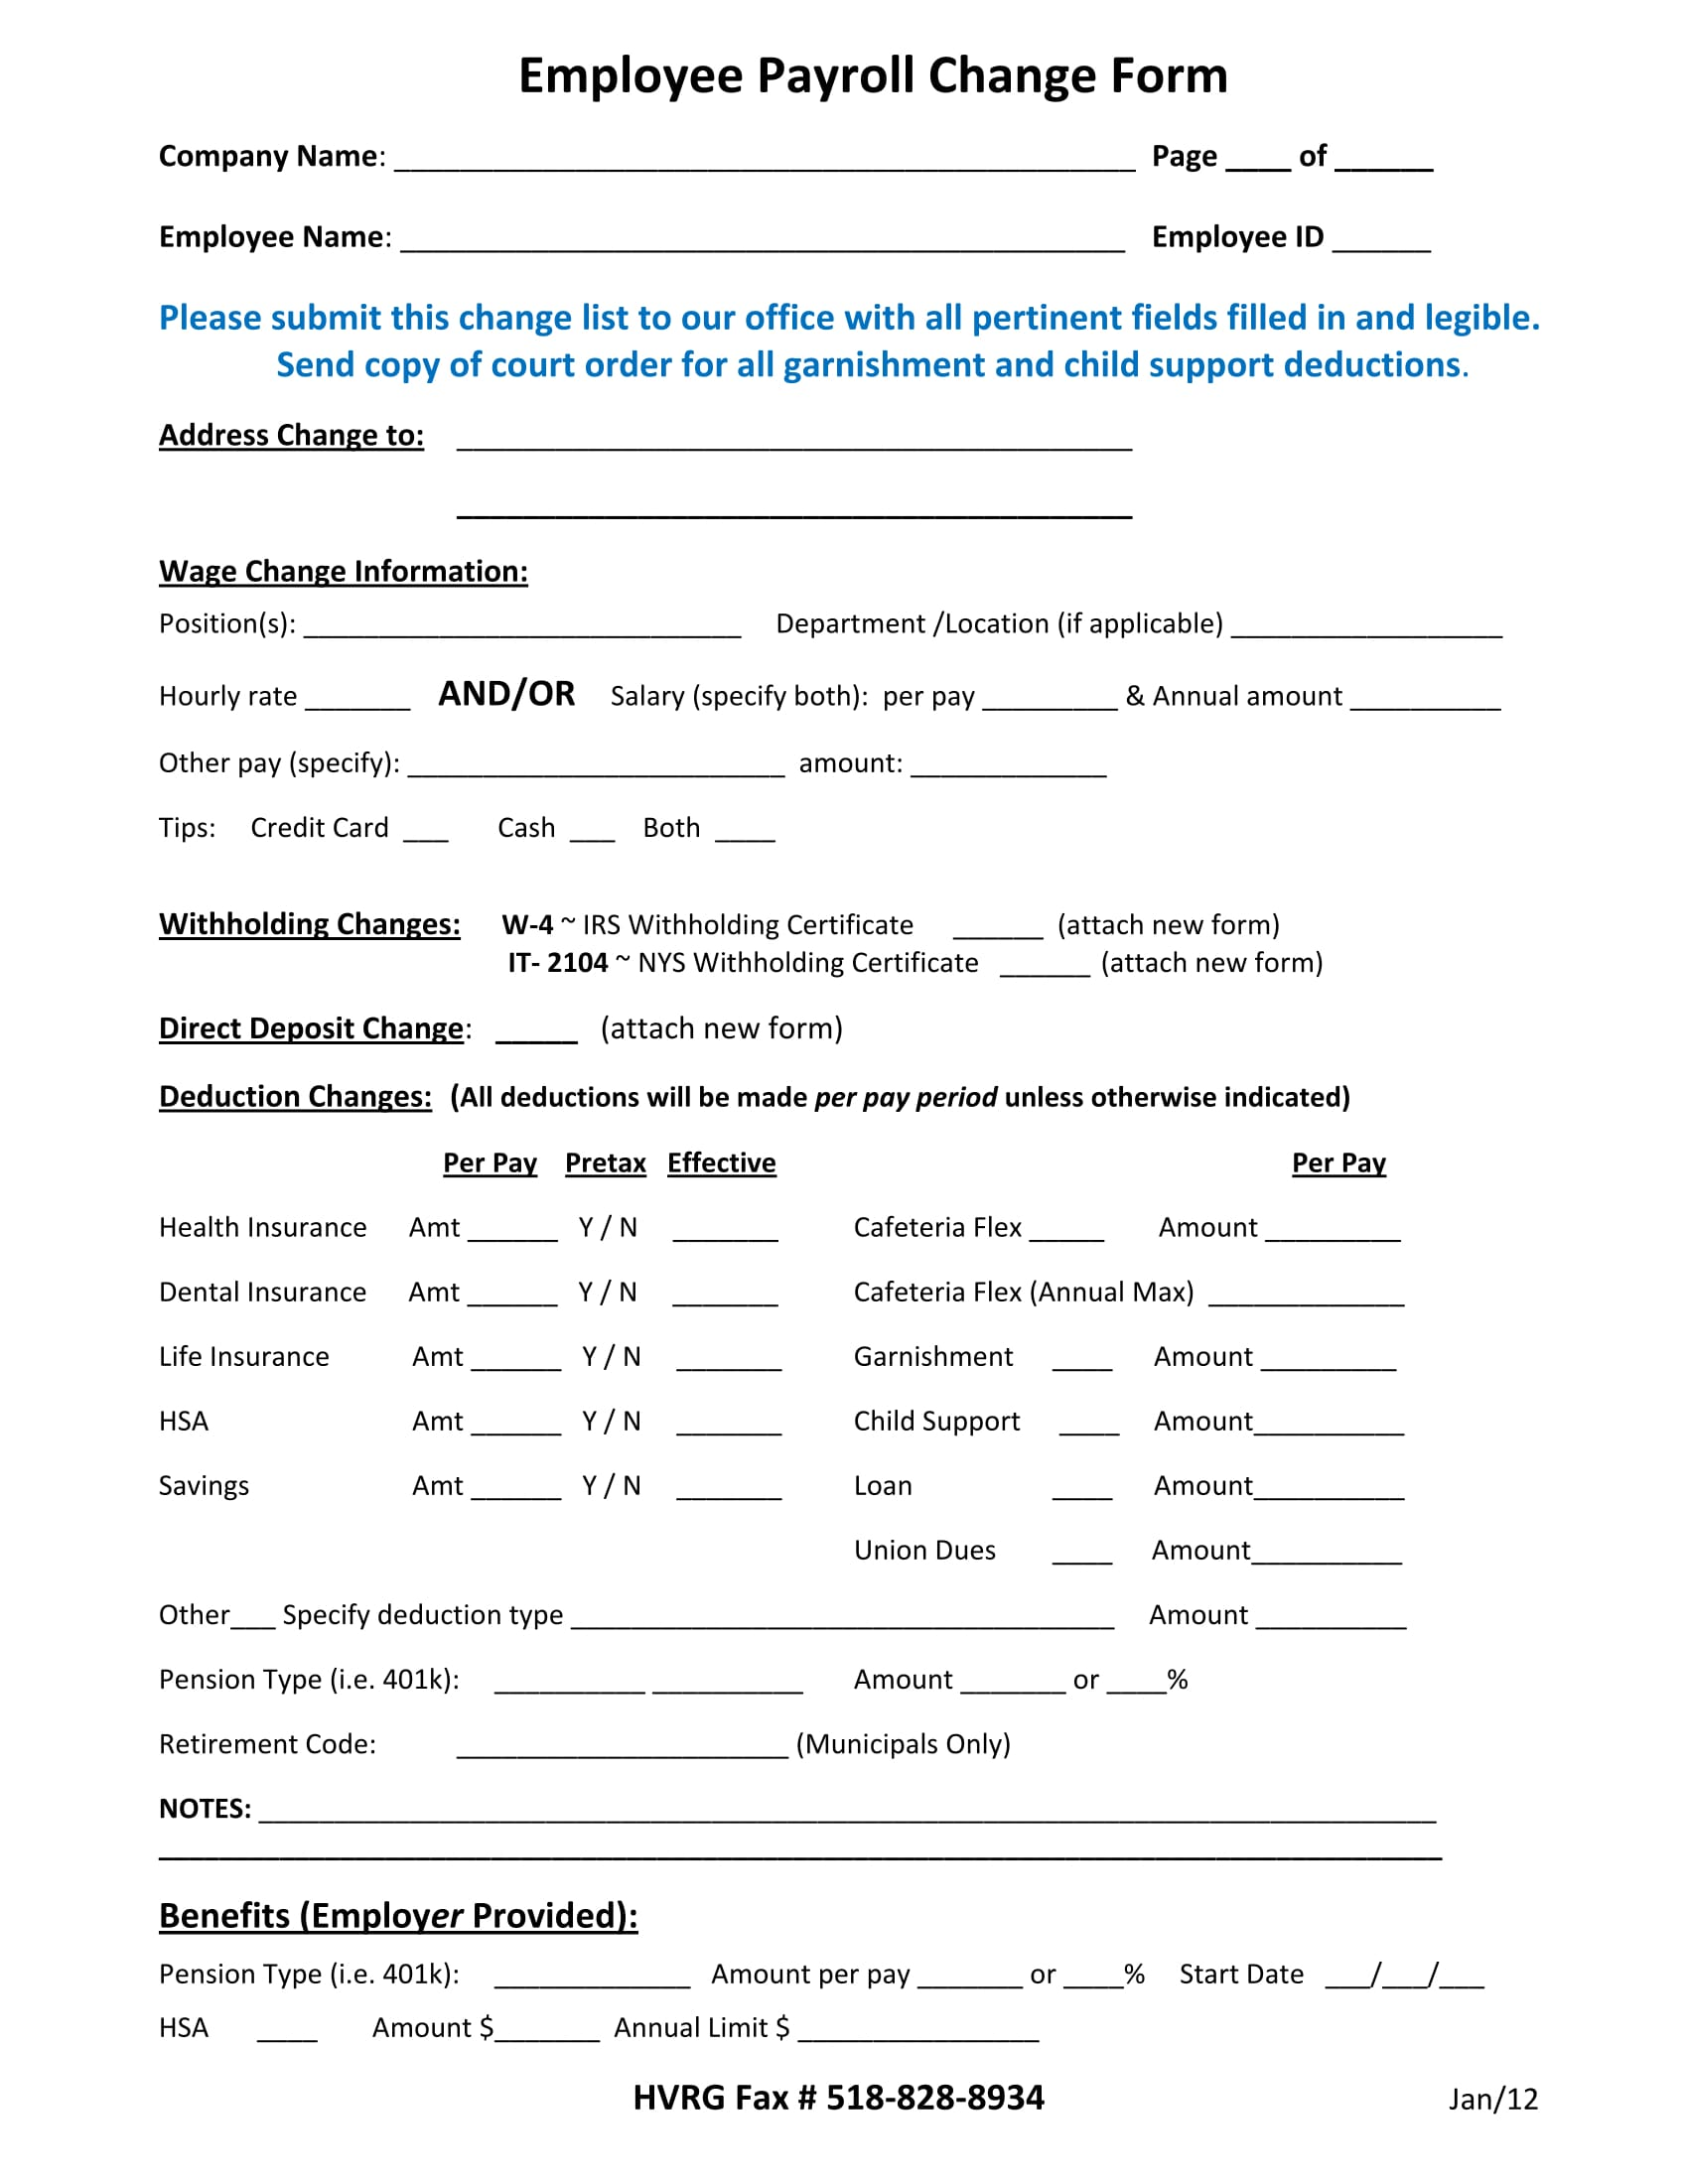 employee payroll change form 1